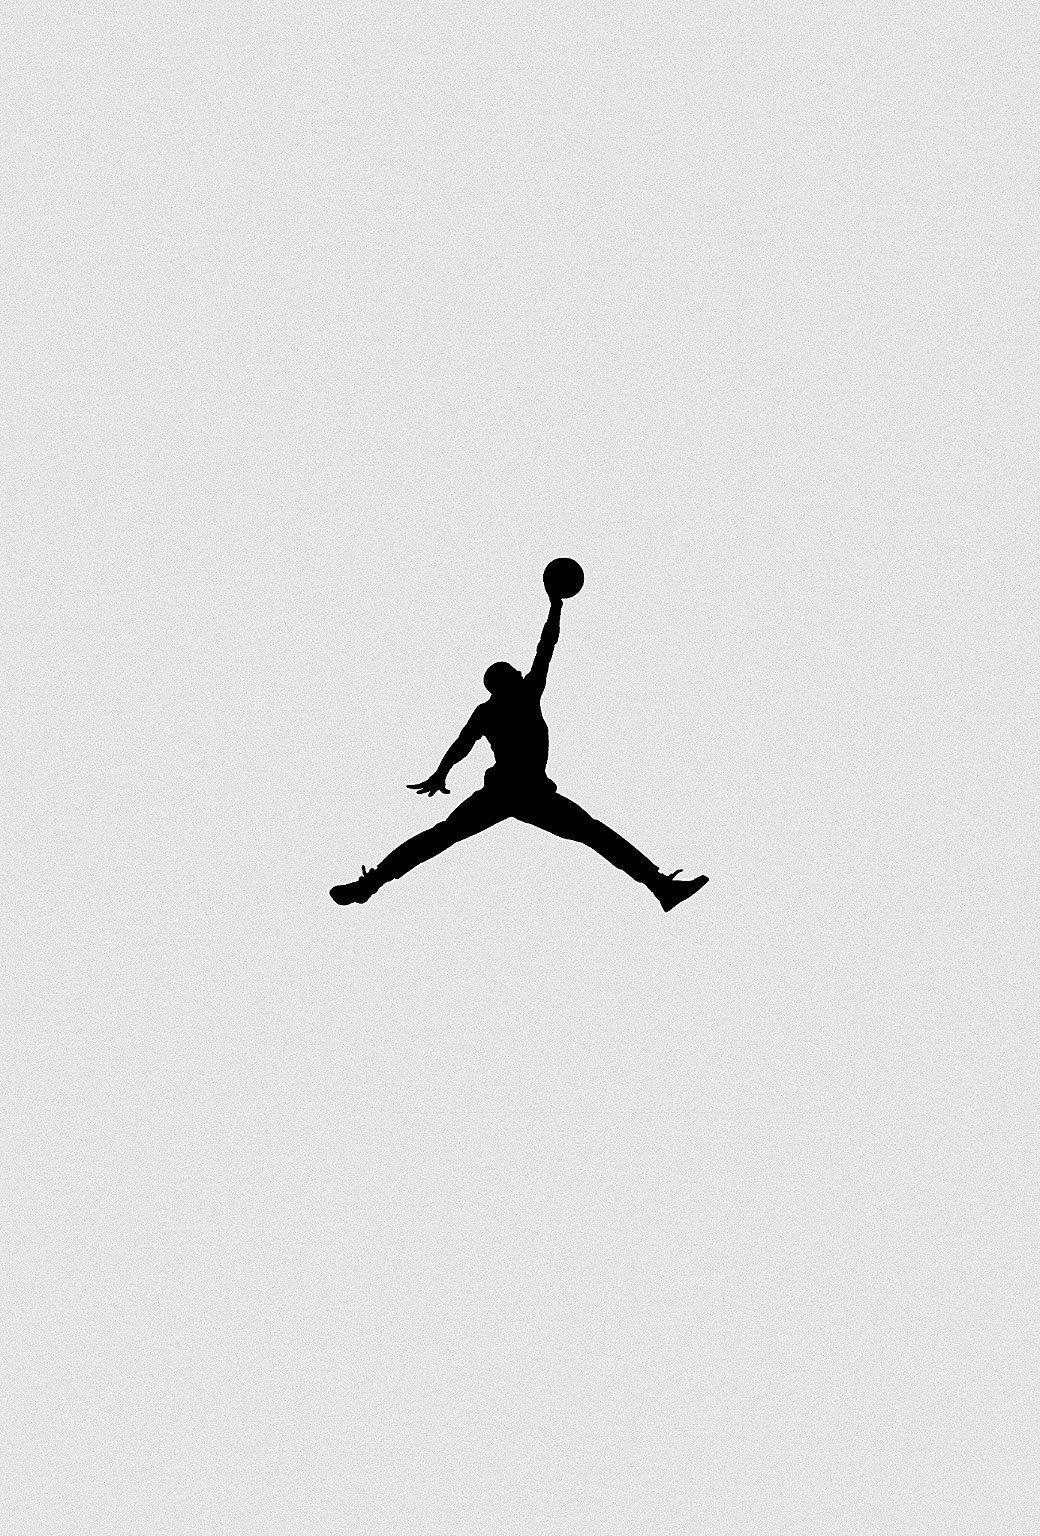 FREEIOS7 | jordan-air - parallax HD iPhone iPad wallpaper